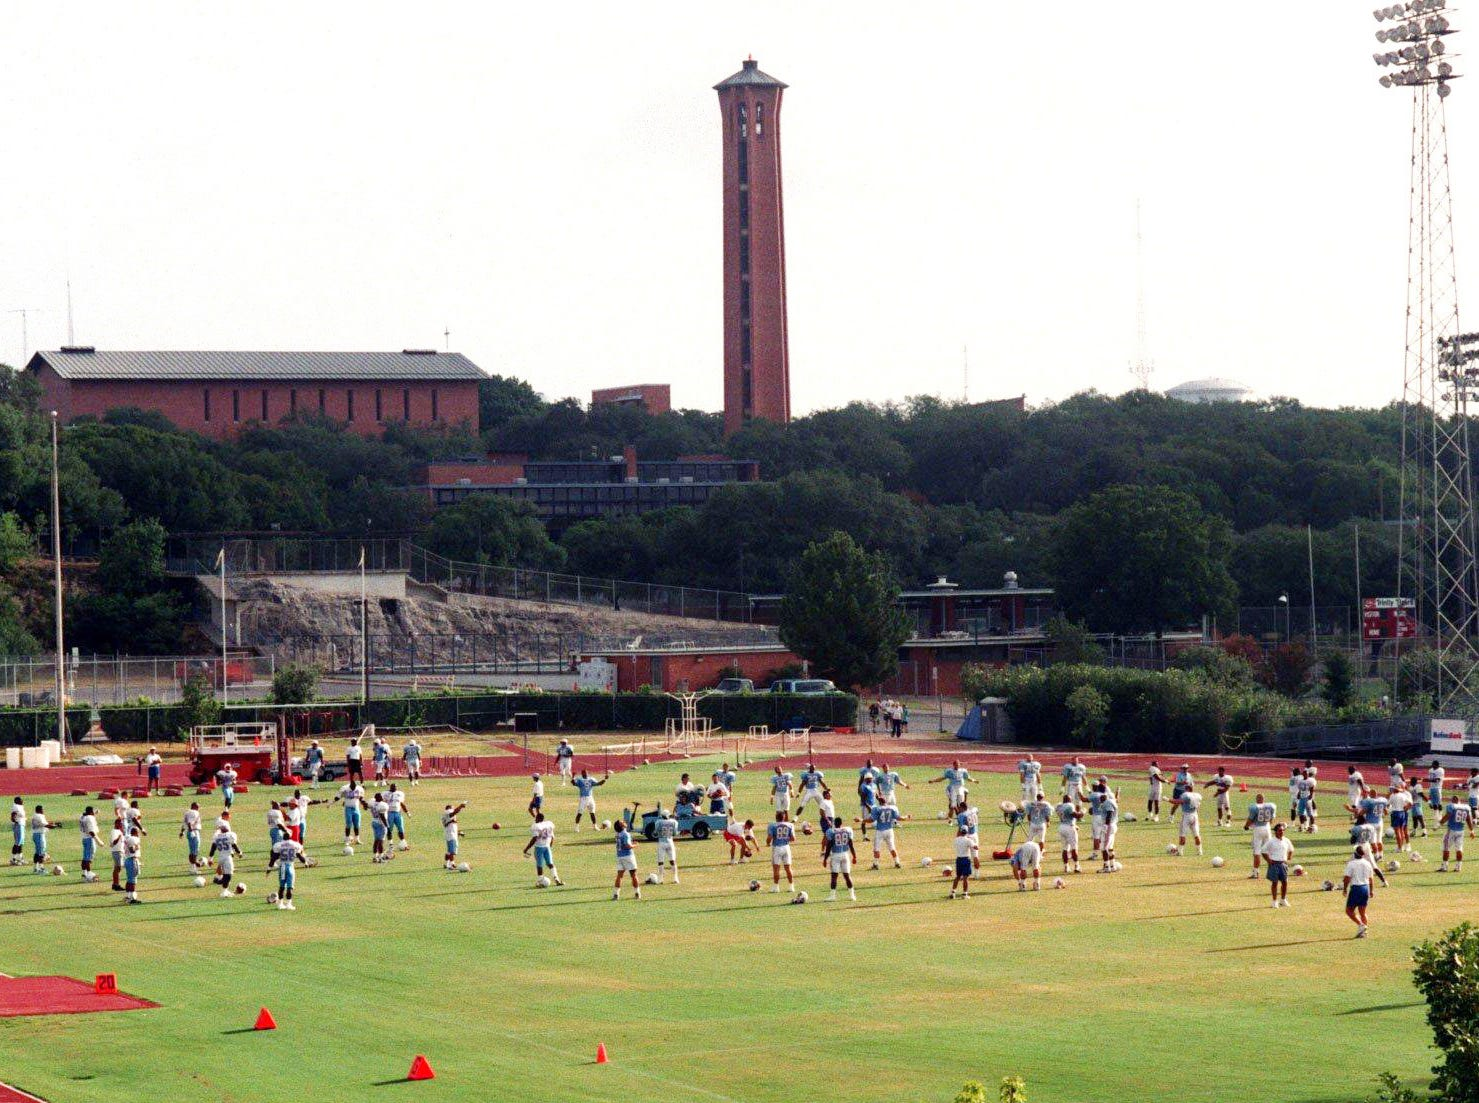 Houston Oilers players warming up before start of the practice on the field of Trinity University, home of their training camp in San Antonio, Texas July 26, 1996.